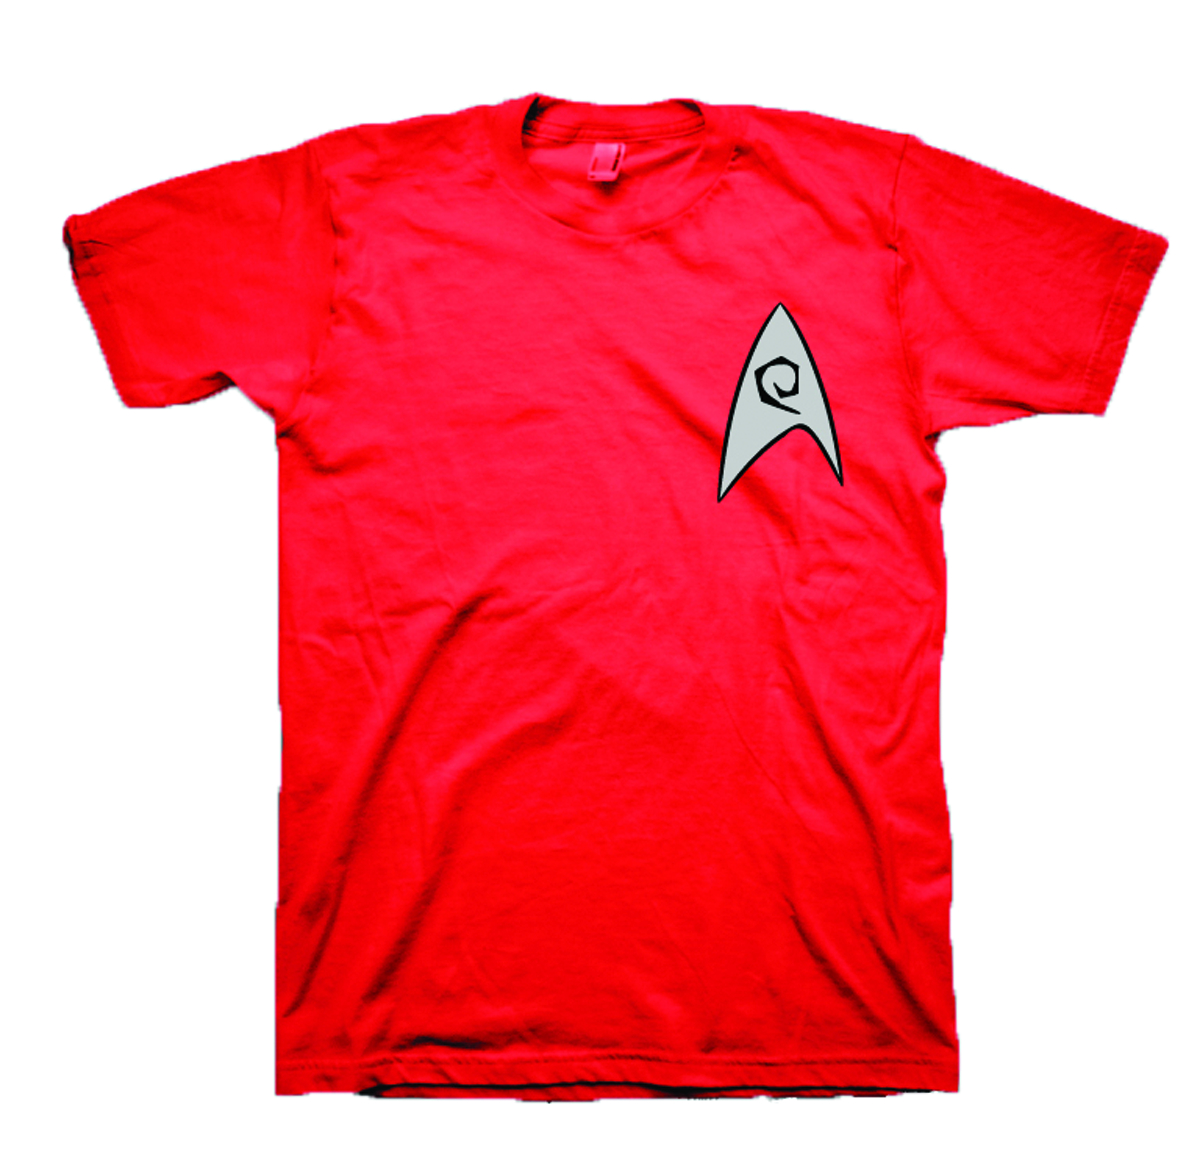 STAR TREK RED SHIRT COSTUME T/S LG